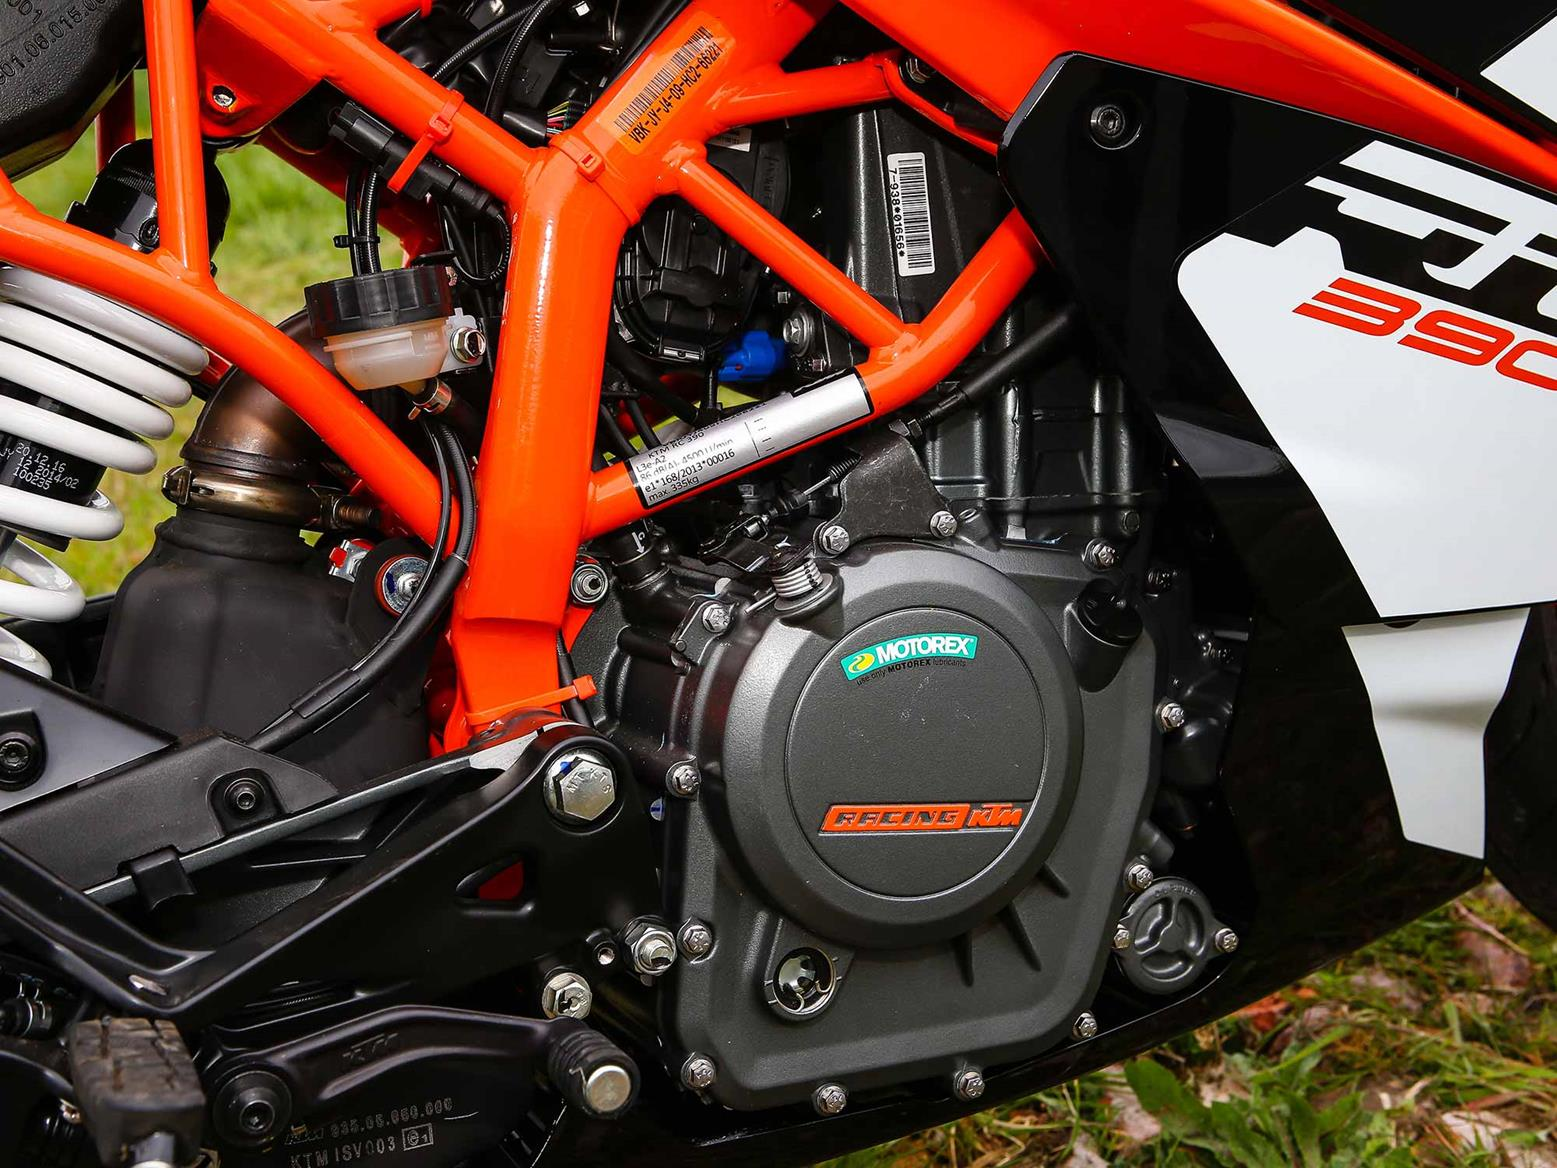 The KTM RC390 features a single-cylinder engine